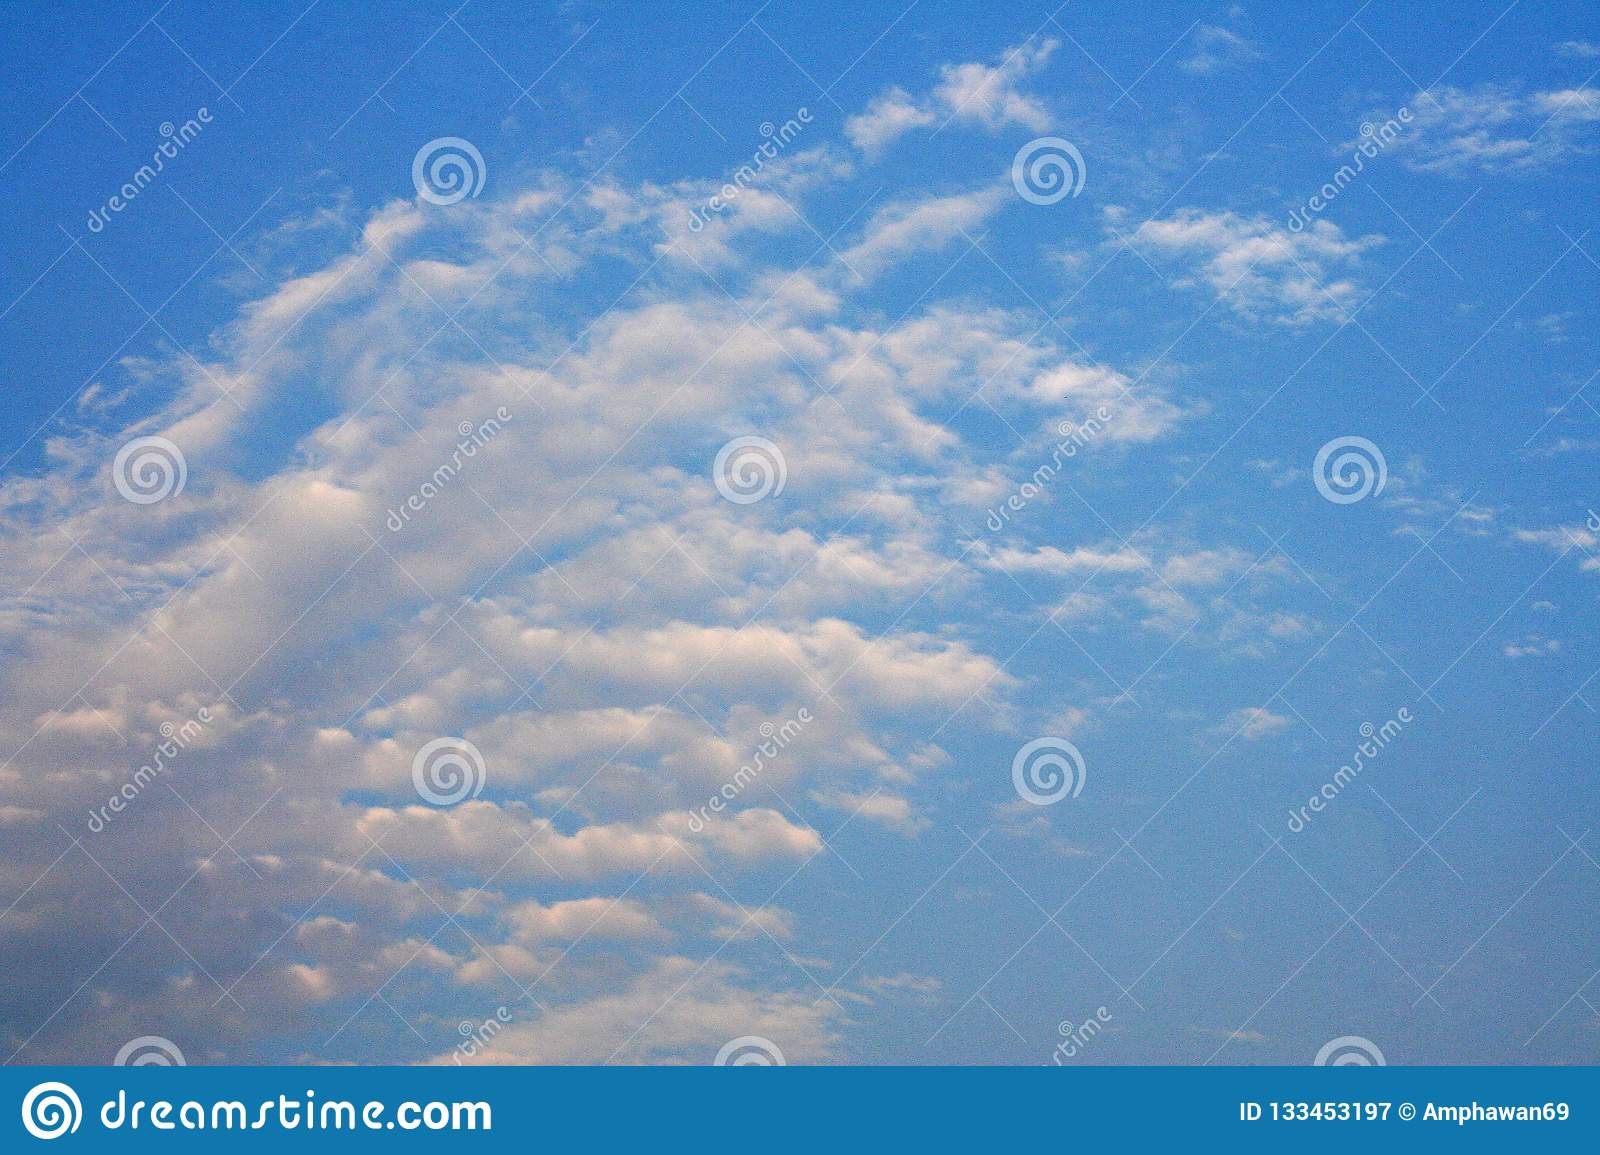 Layers of white cloud on blue sky